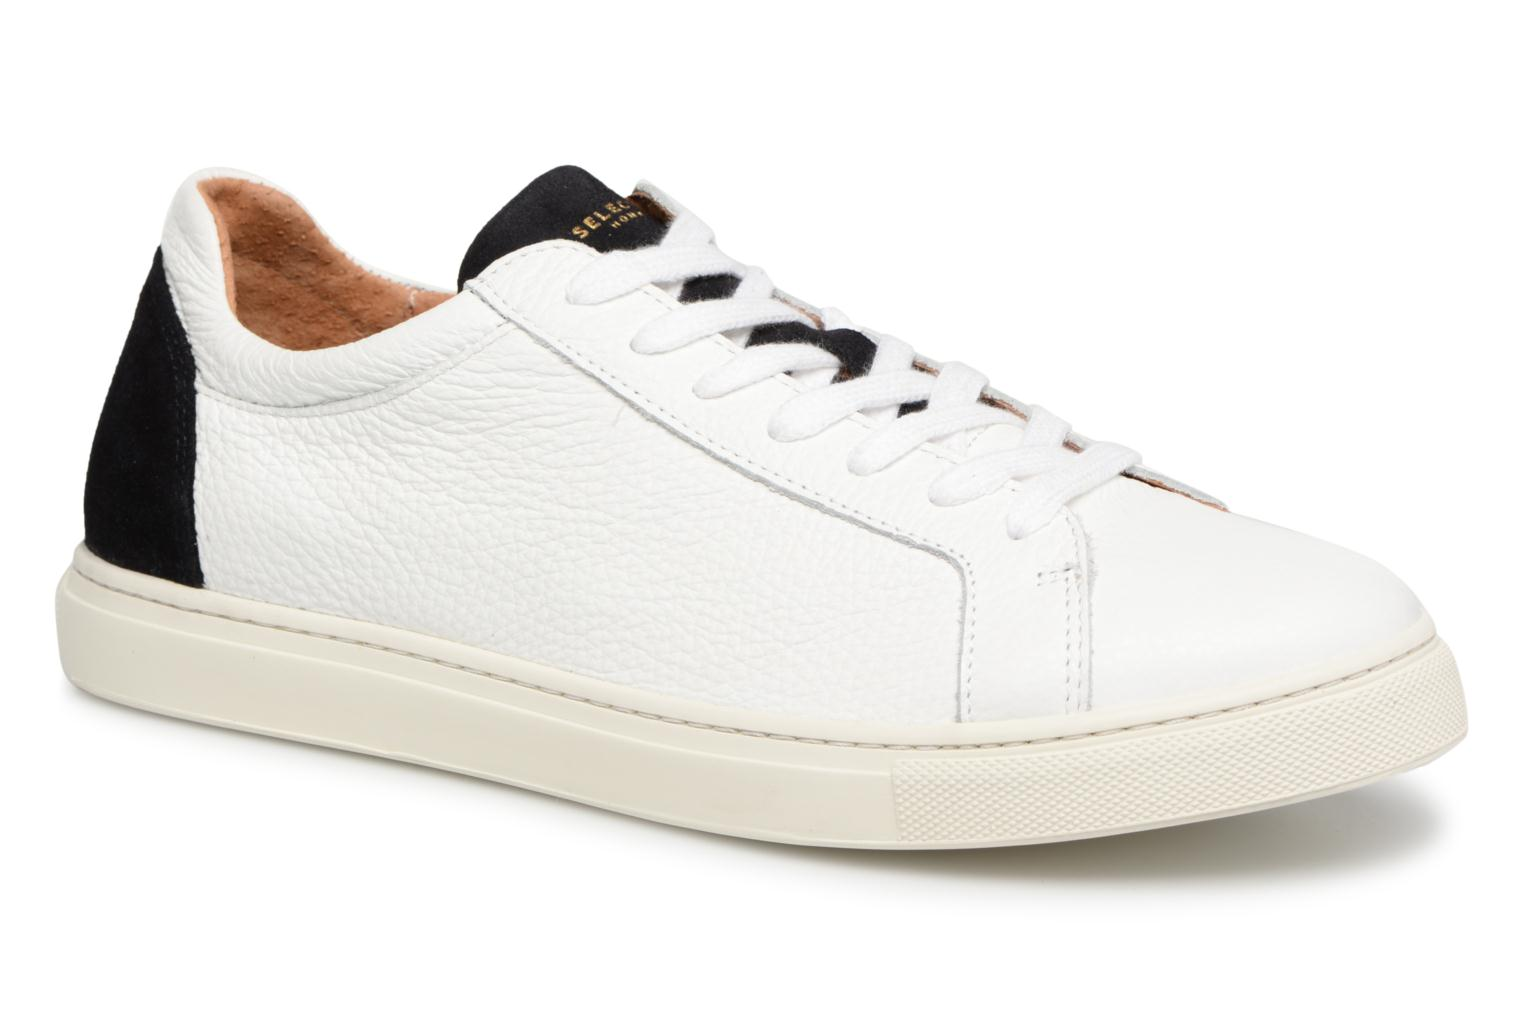 Sneakers Selected Homme Wit